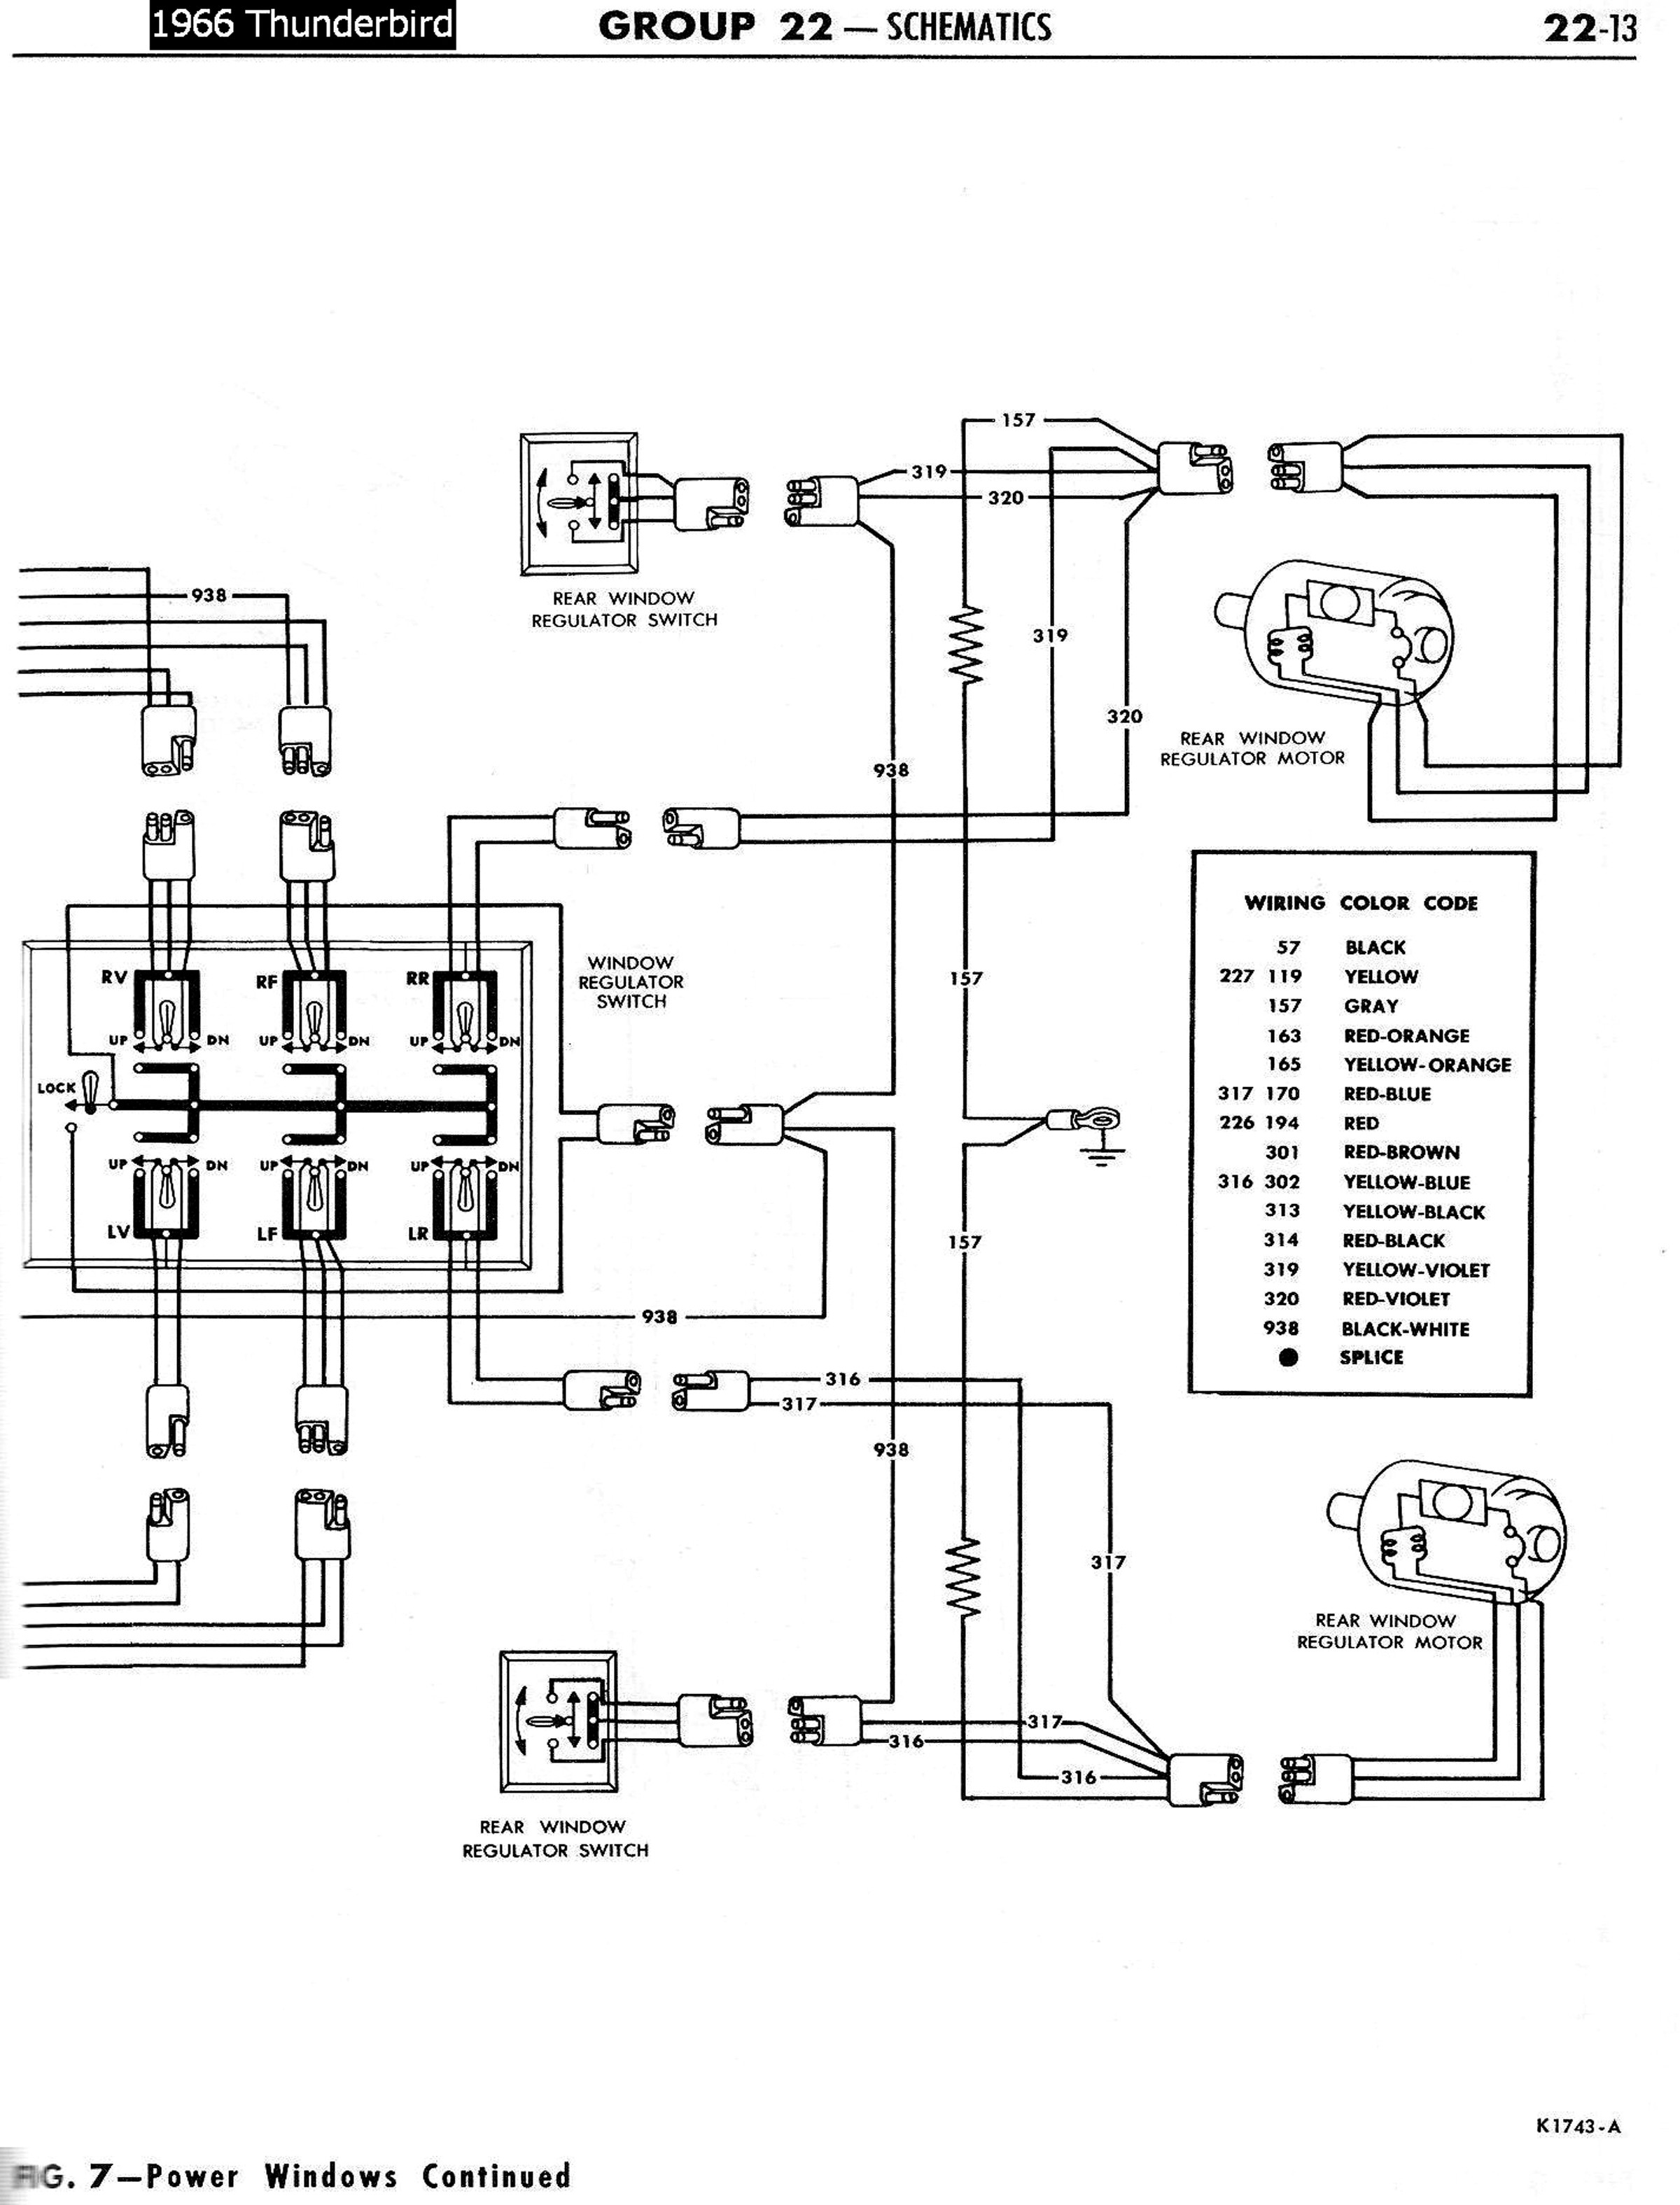 165 Ford Thunderbird Starter Wire Diagram Another Wiring Diagrams Small Block Chevy Schematics Rh Enr Green Com Basic